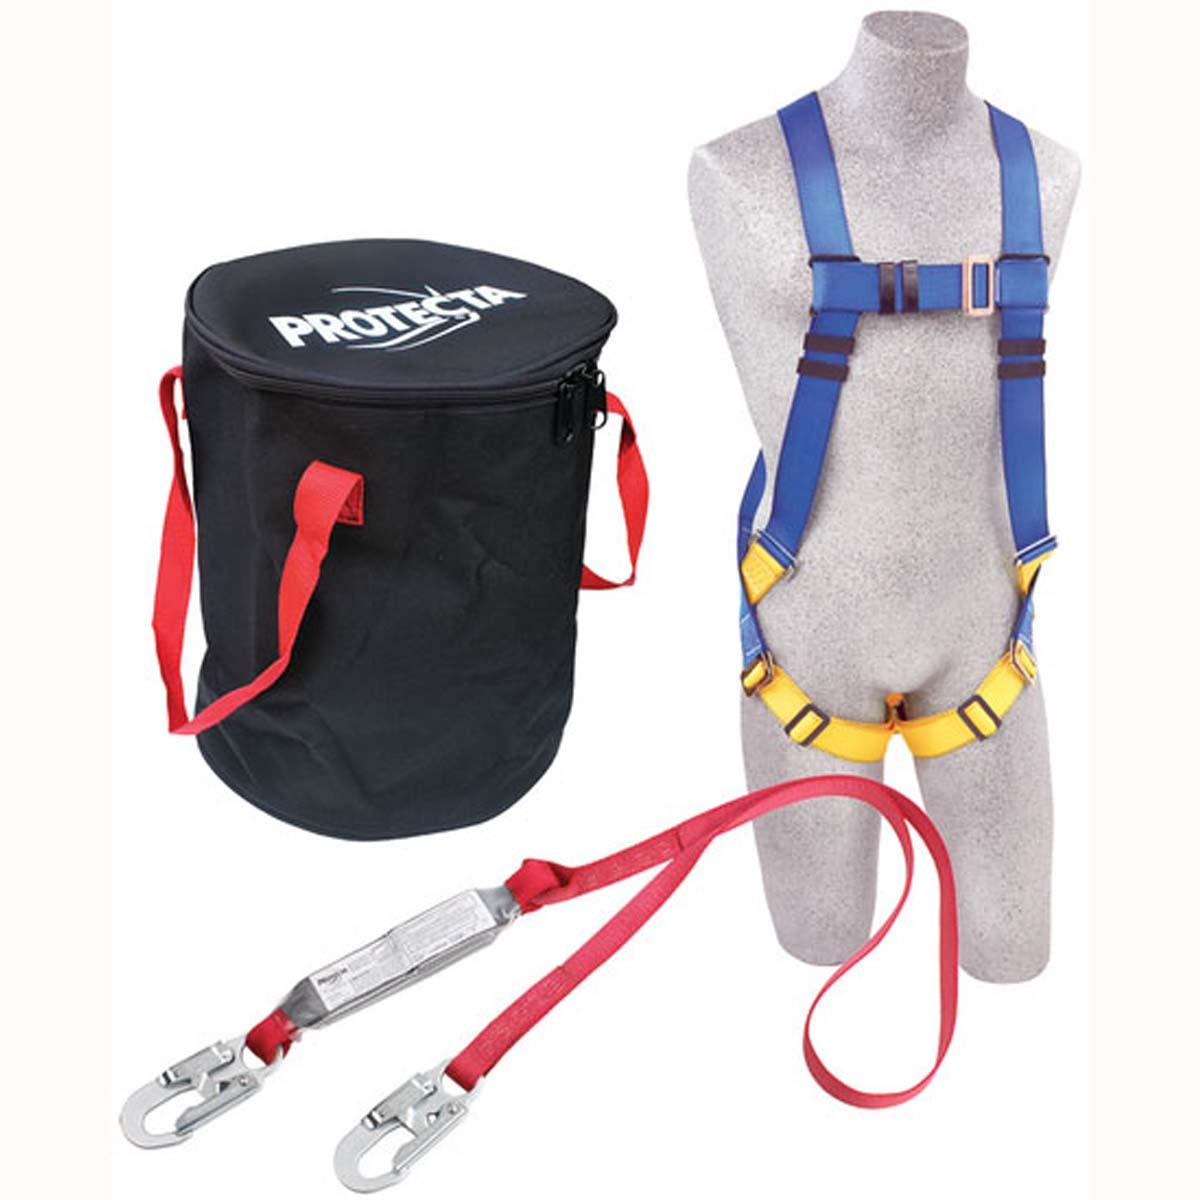 "Compliance in a Canâ""¢ Light Roofer's Fall Protection Kit - In a bag"